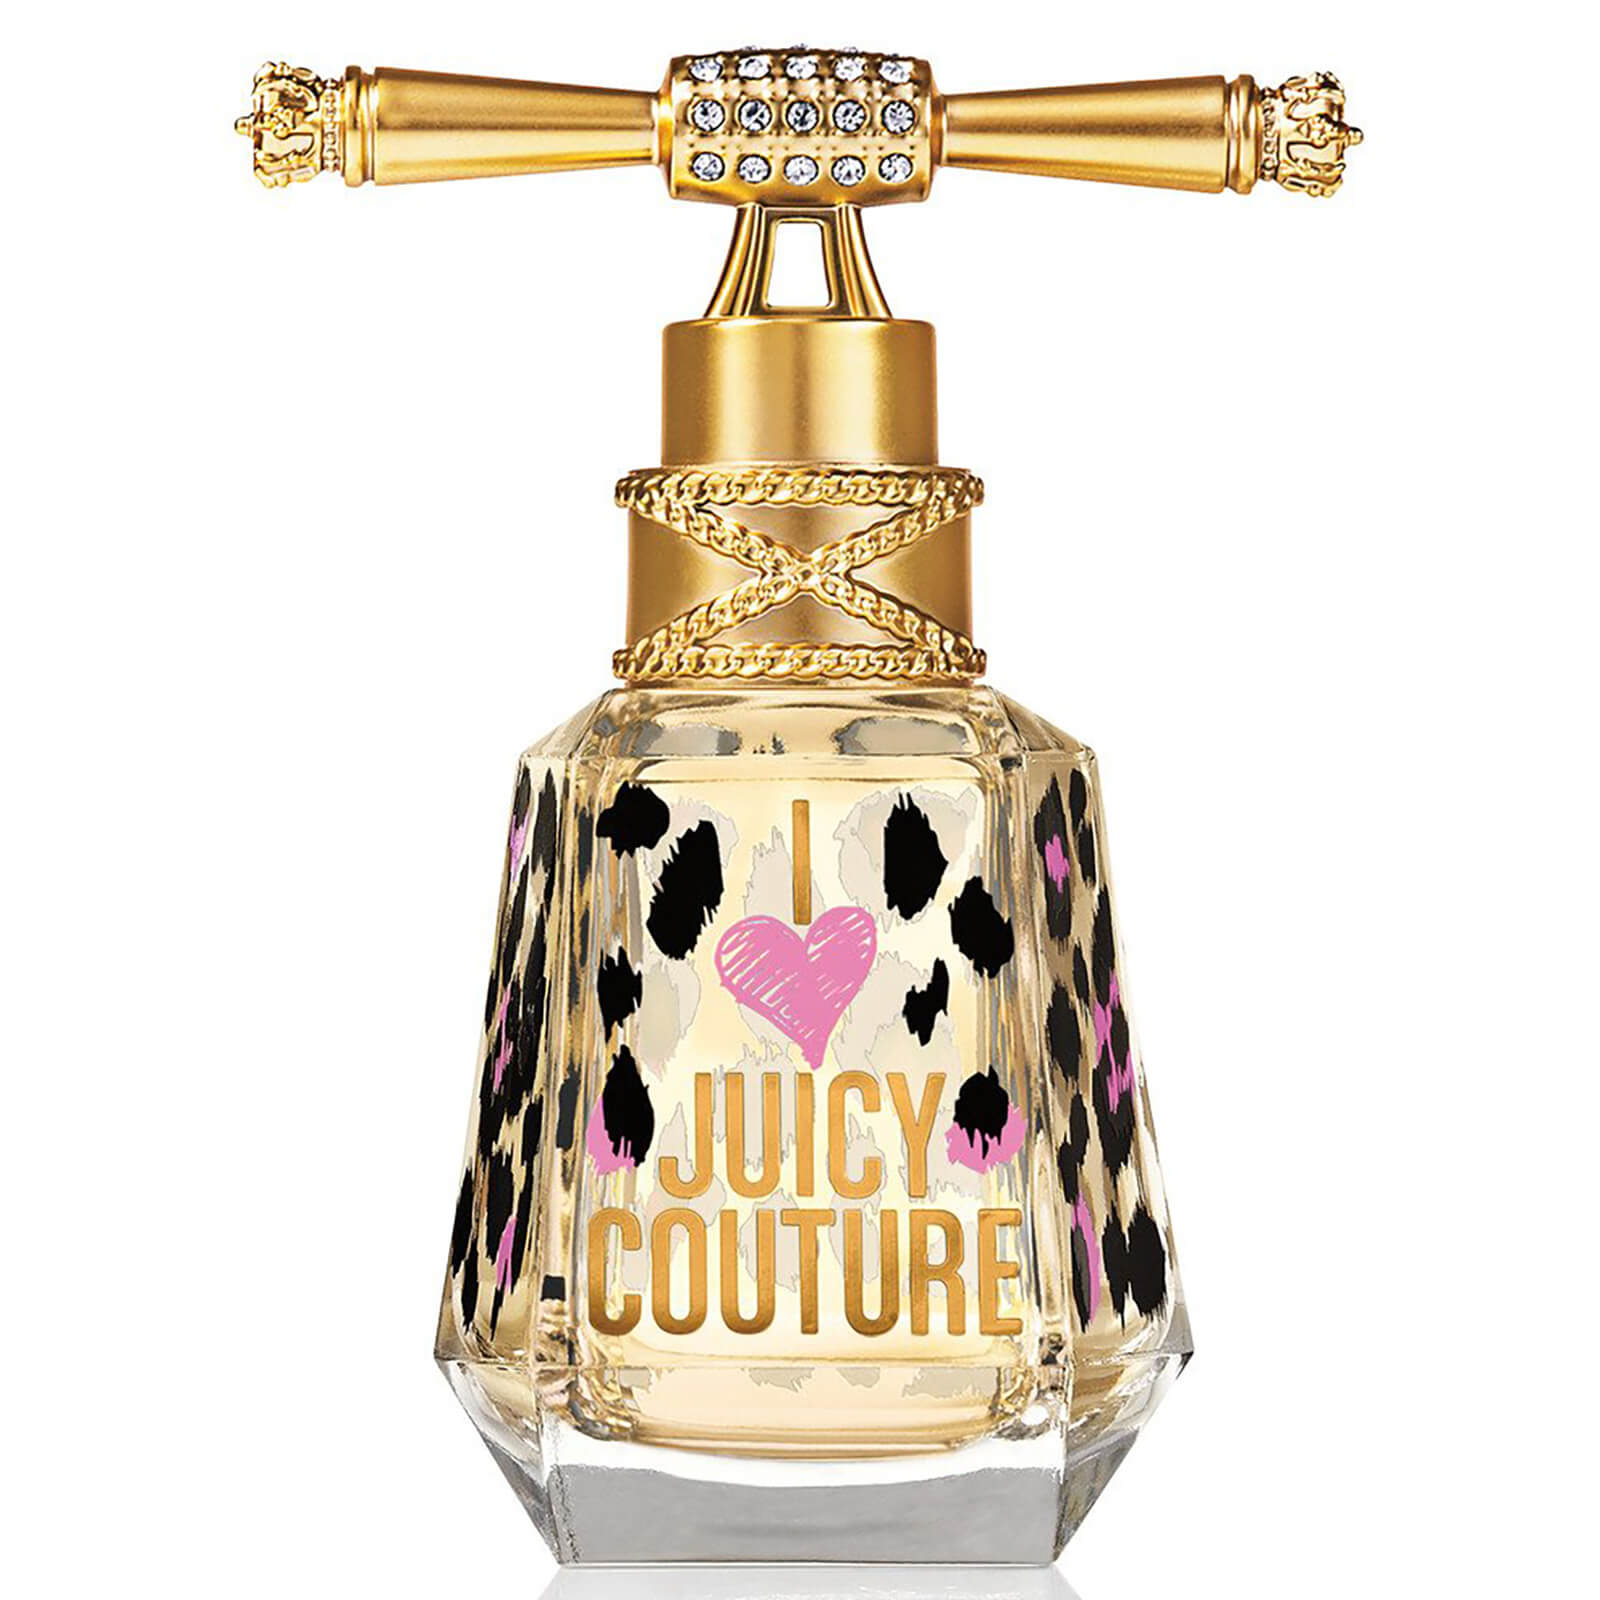 Juicy Couture - I Love Juicy Couture EDP 50 ml